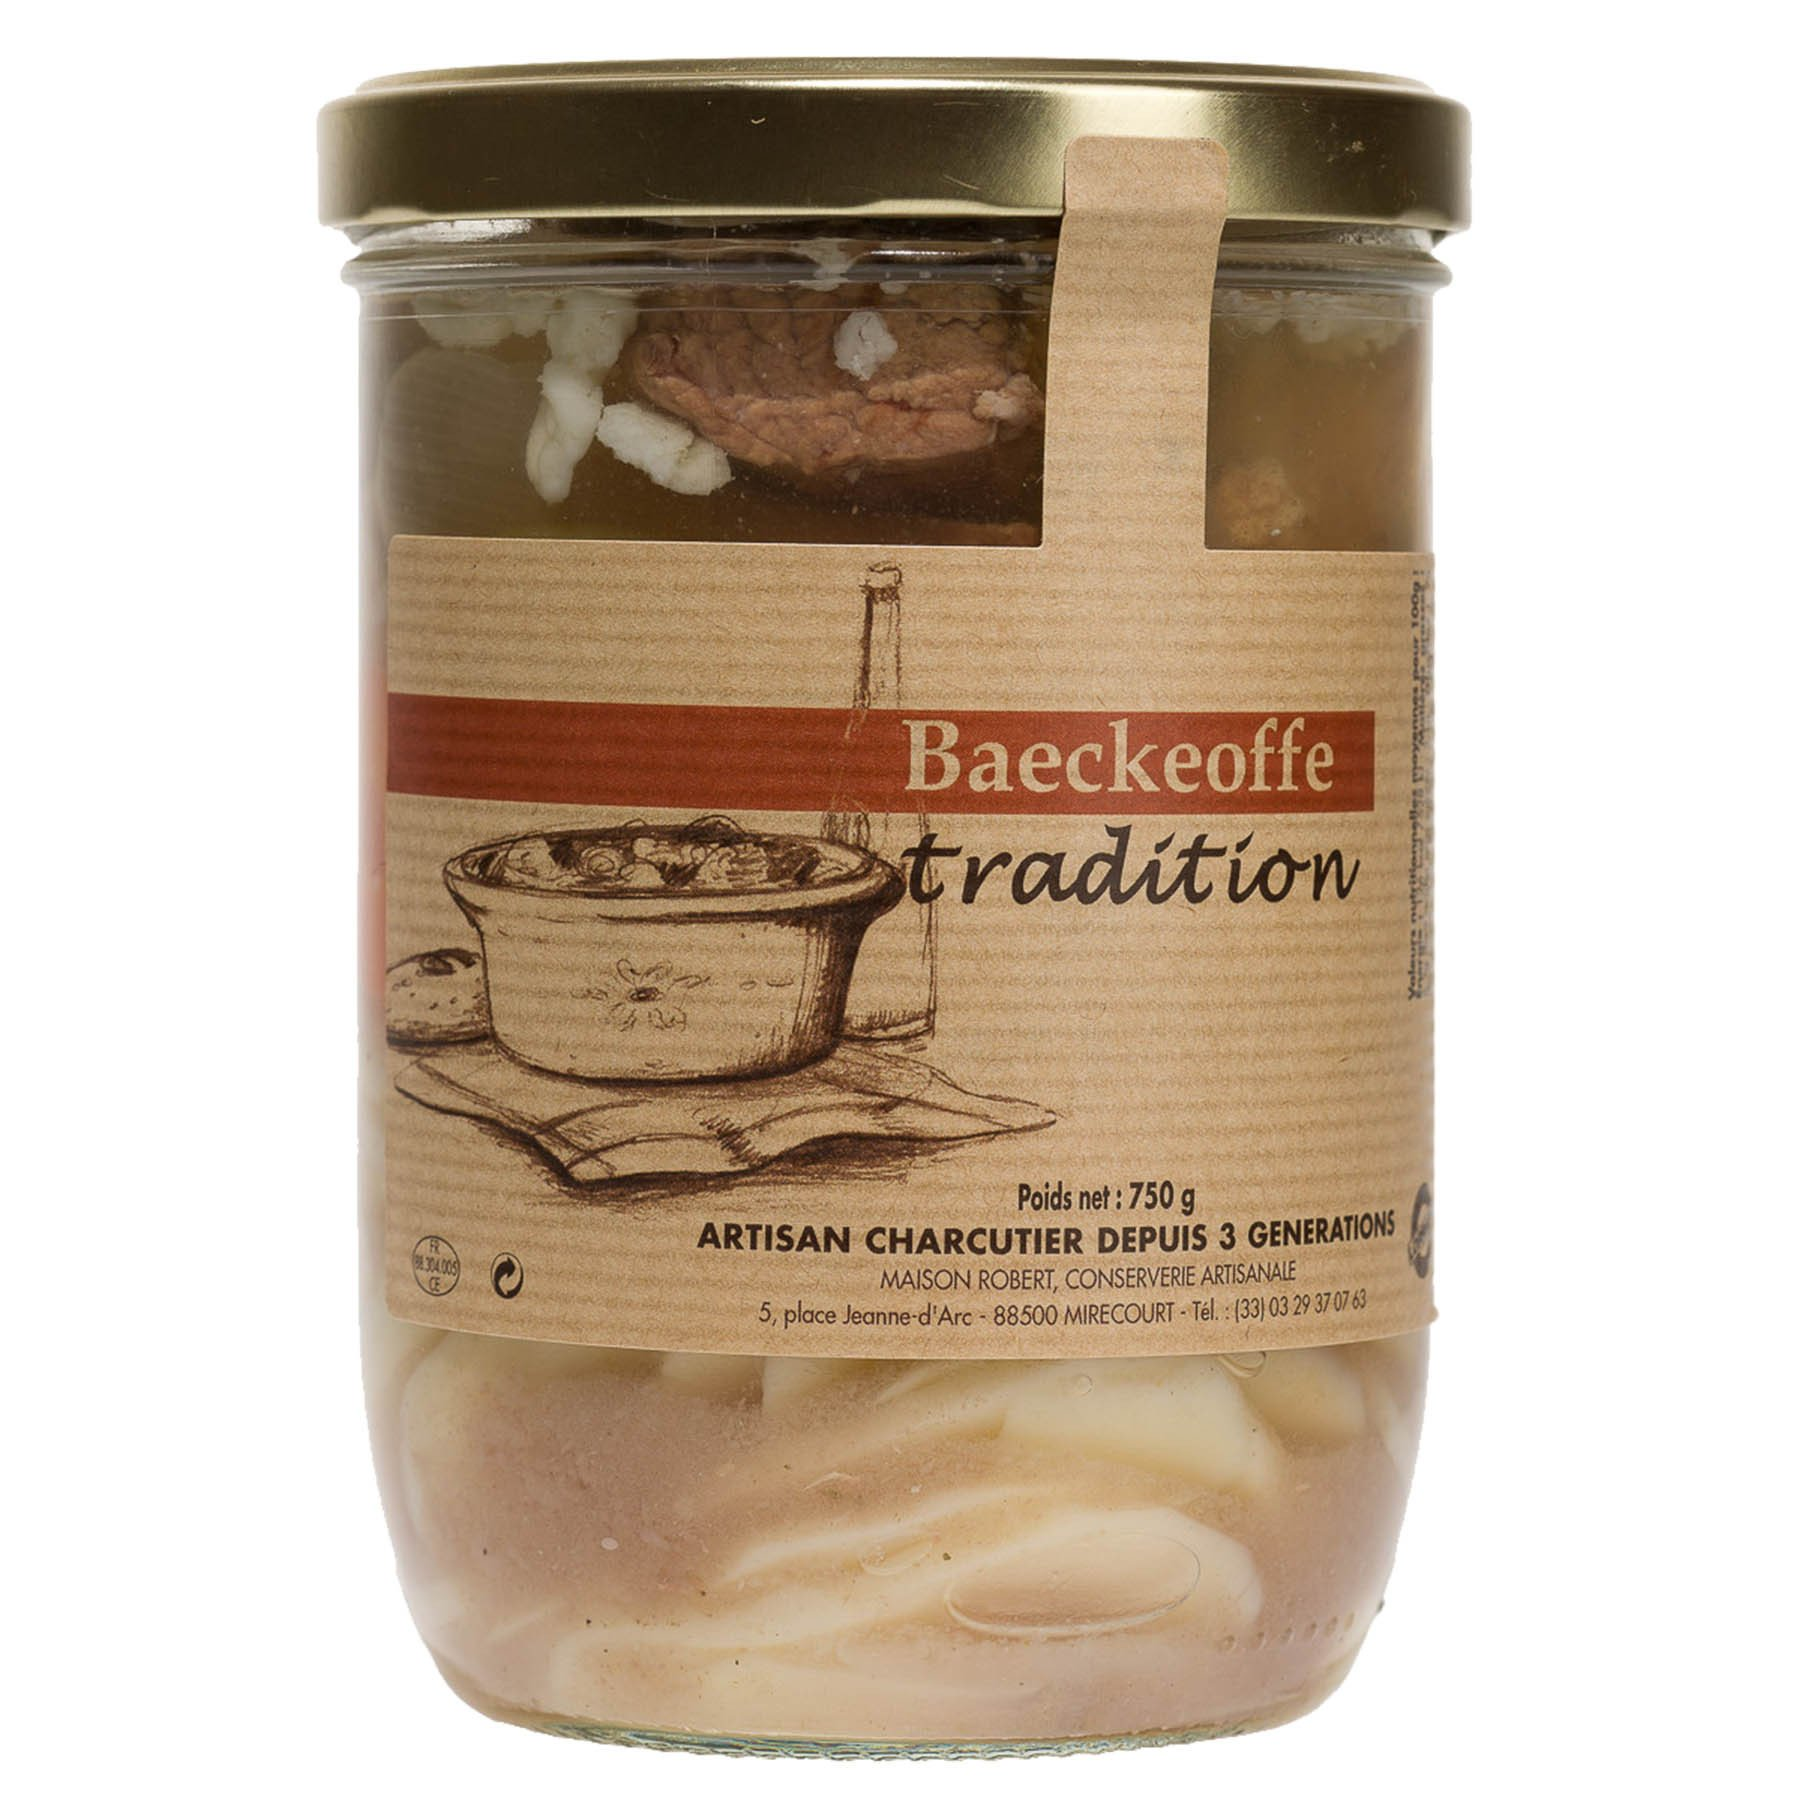 Baeckeoffe tradition, 750 g